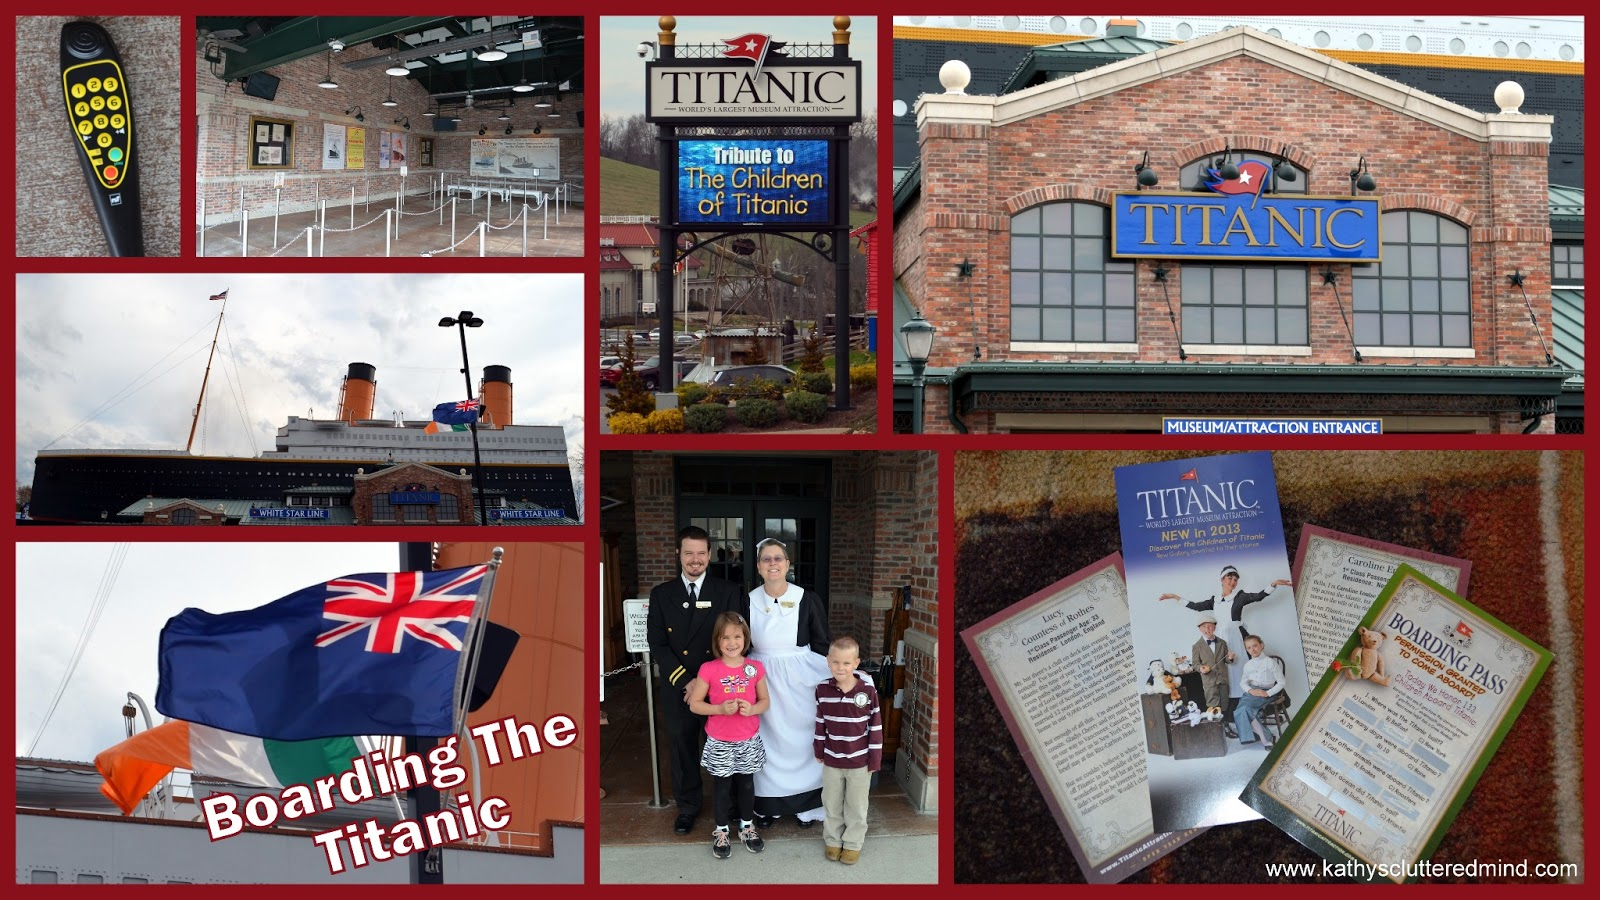 Kathys Cluttered Mind: Hands On History At The Titanic.